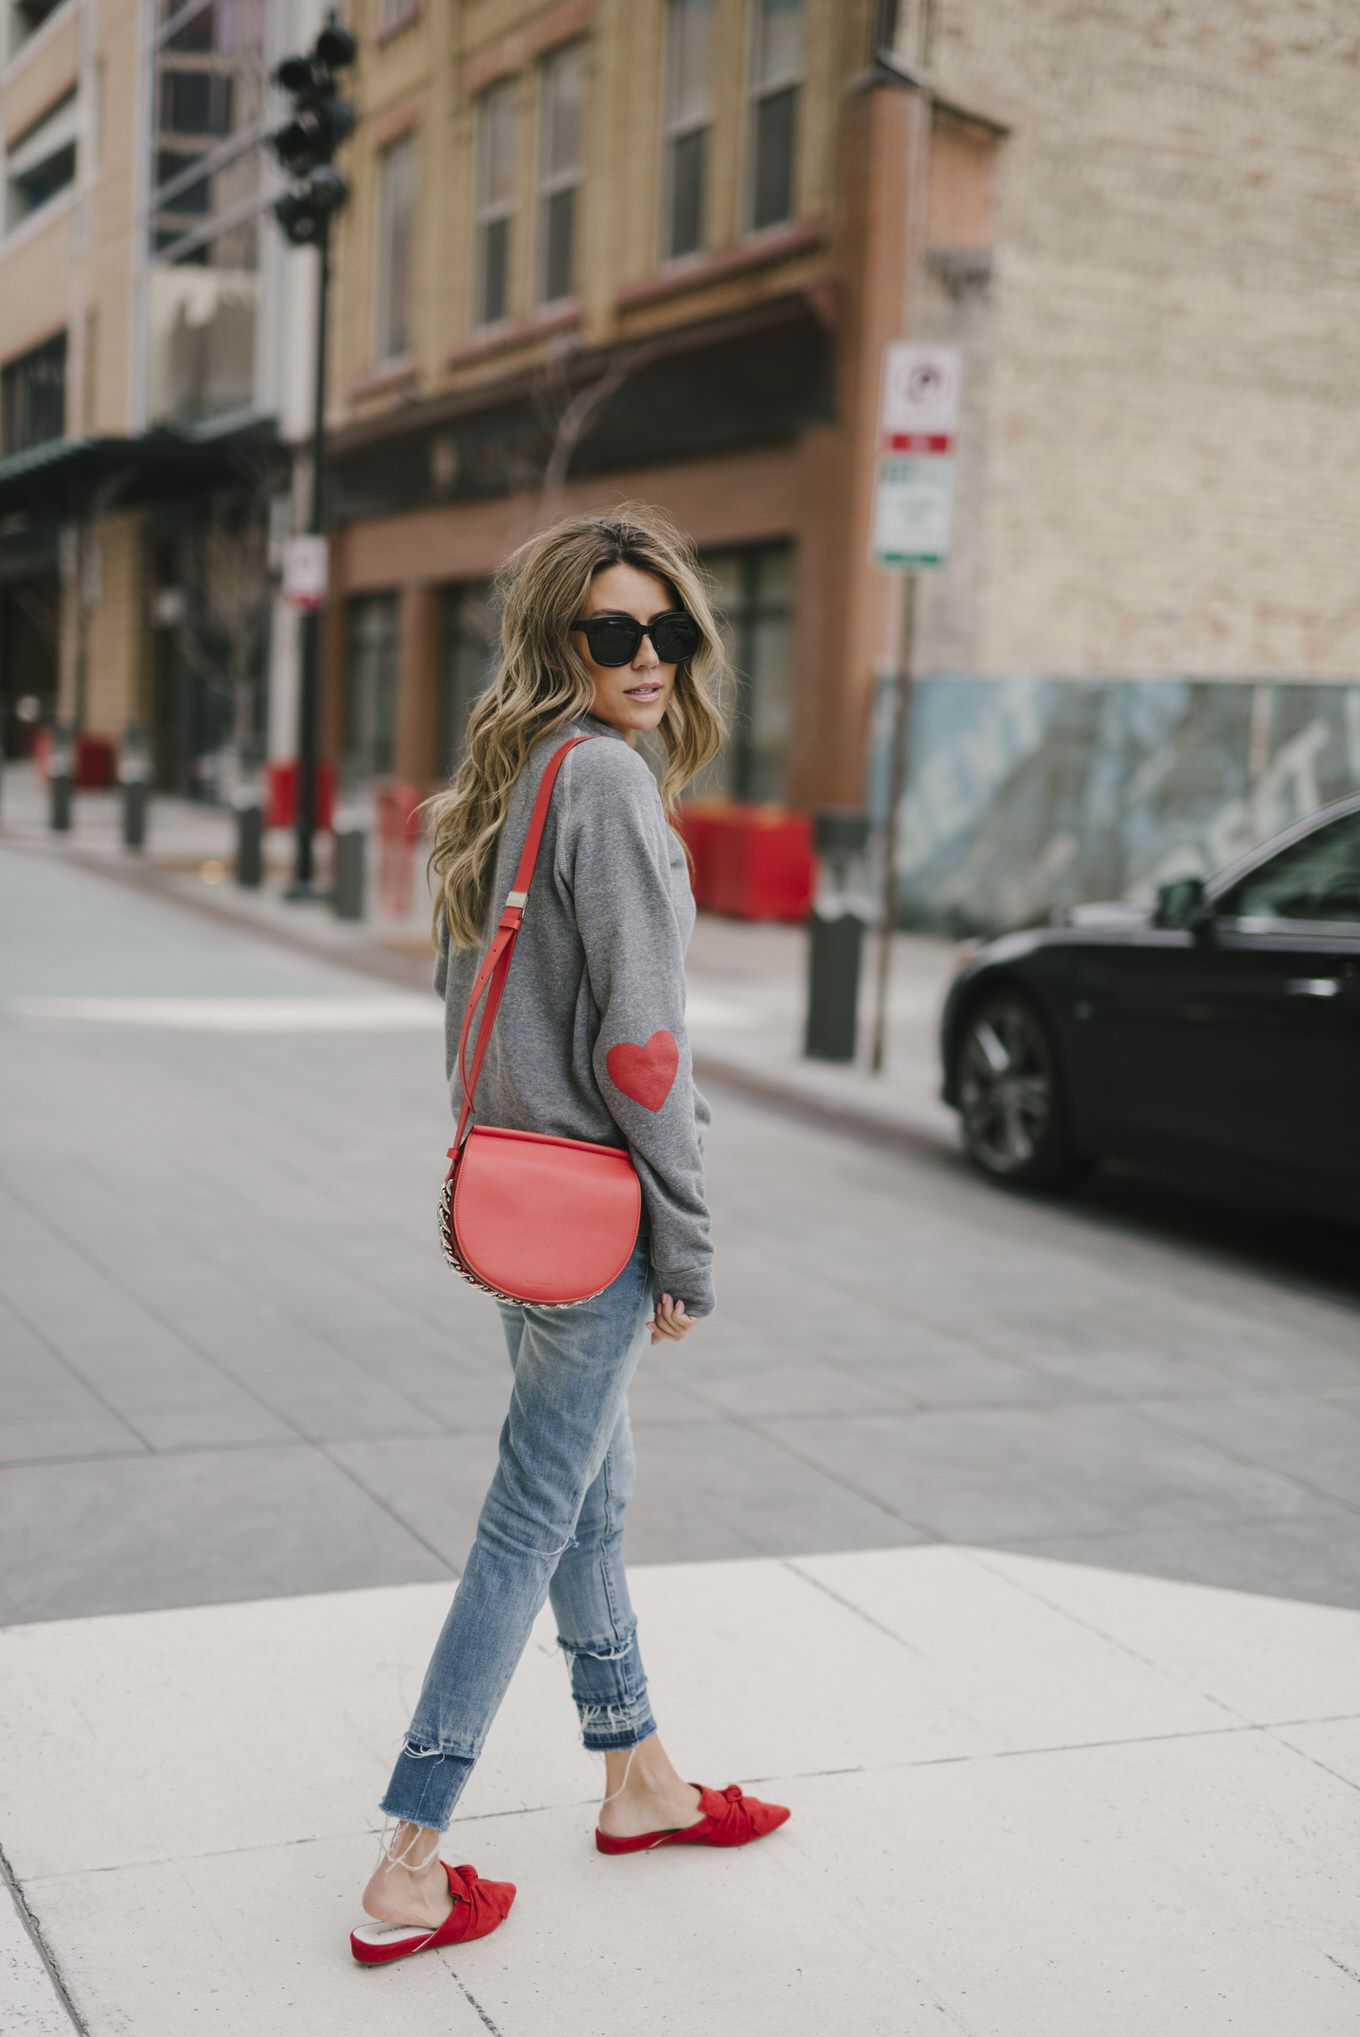 27475ae2bebe Grey red heart sweatshirt++jeans+red knot slides+red crossbody bag+ sunglasses. Late Winter  Valentine s Day Casual Date Outfit 2018